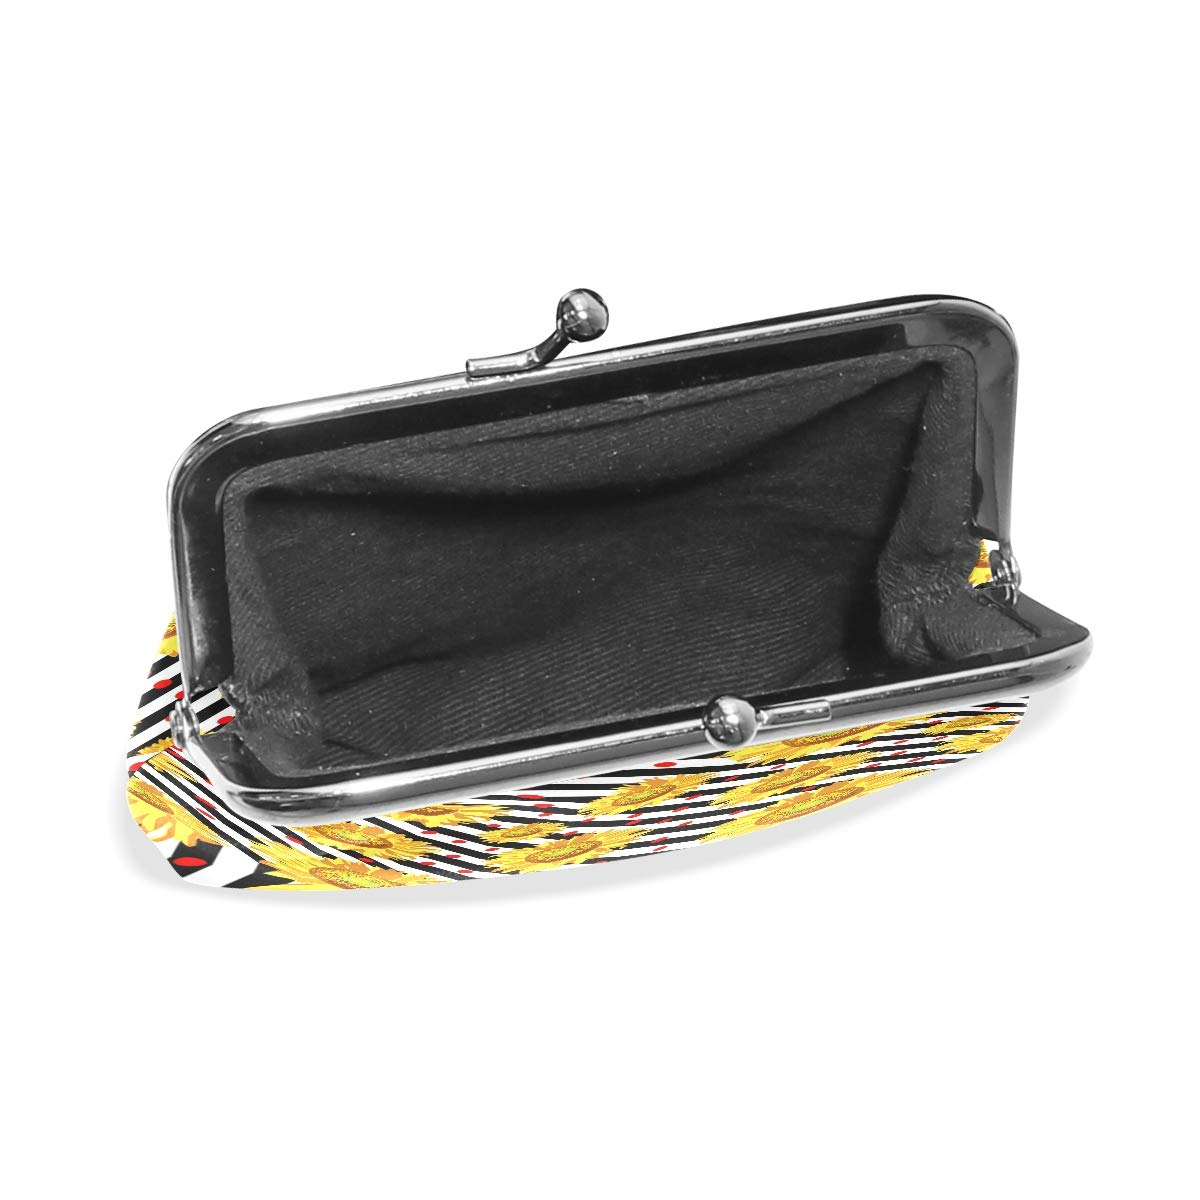 Exquisite Buckle Coin Purses Sunflower On Black Mini Wallet Key Card Holder Purse for Women